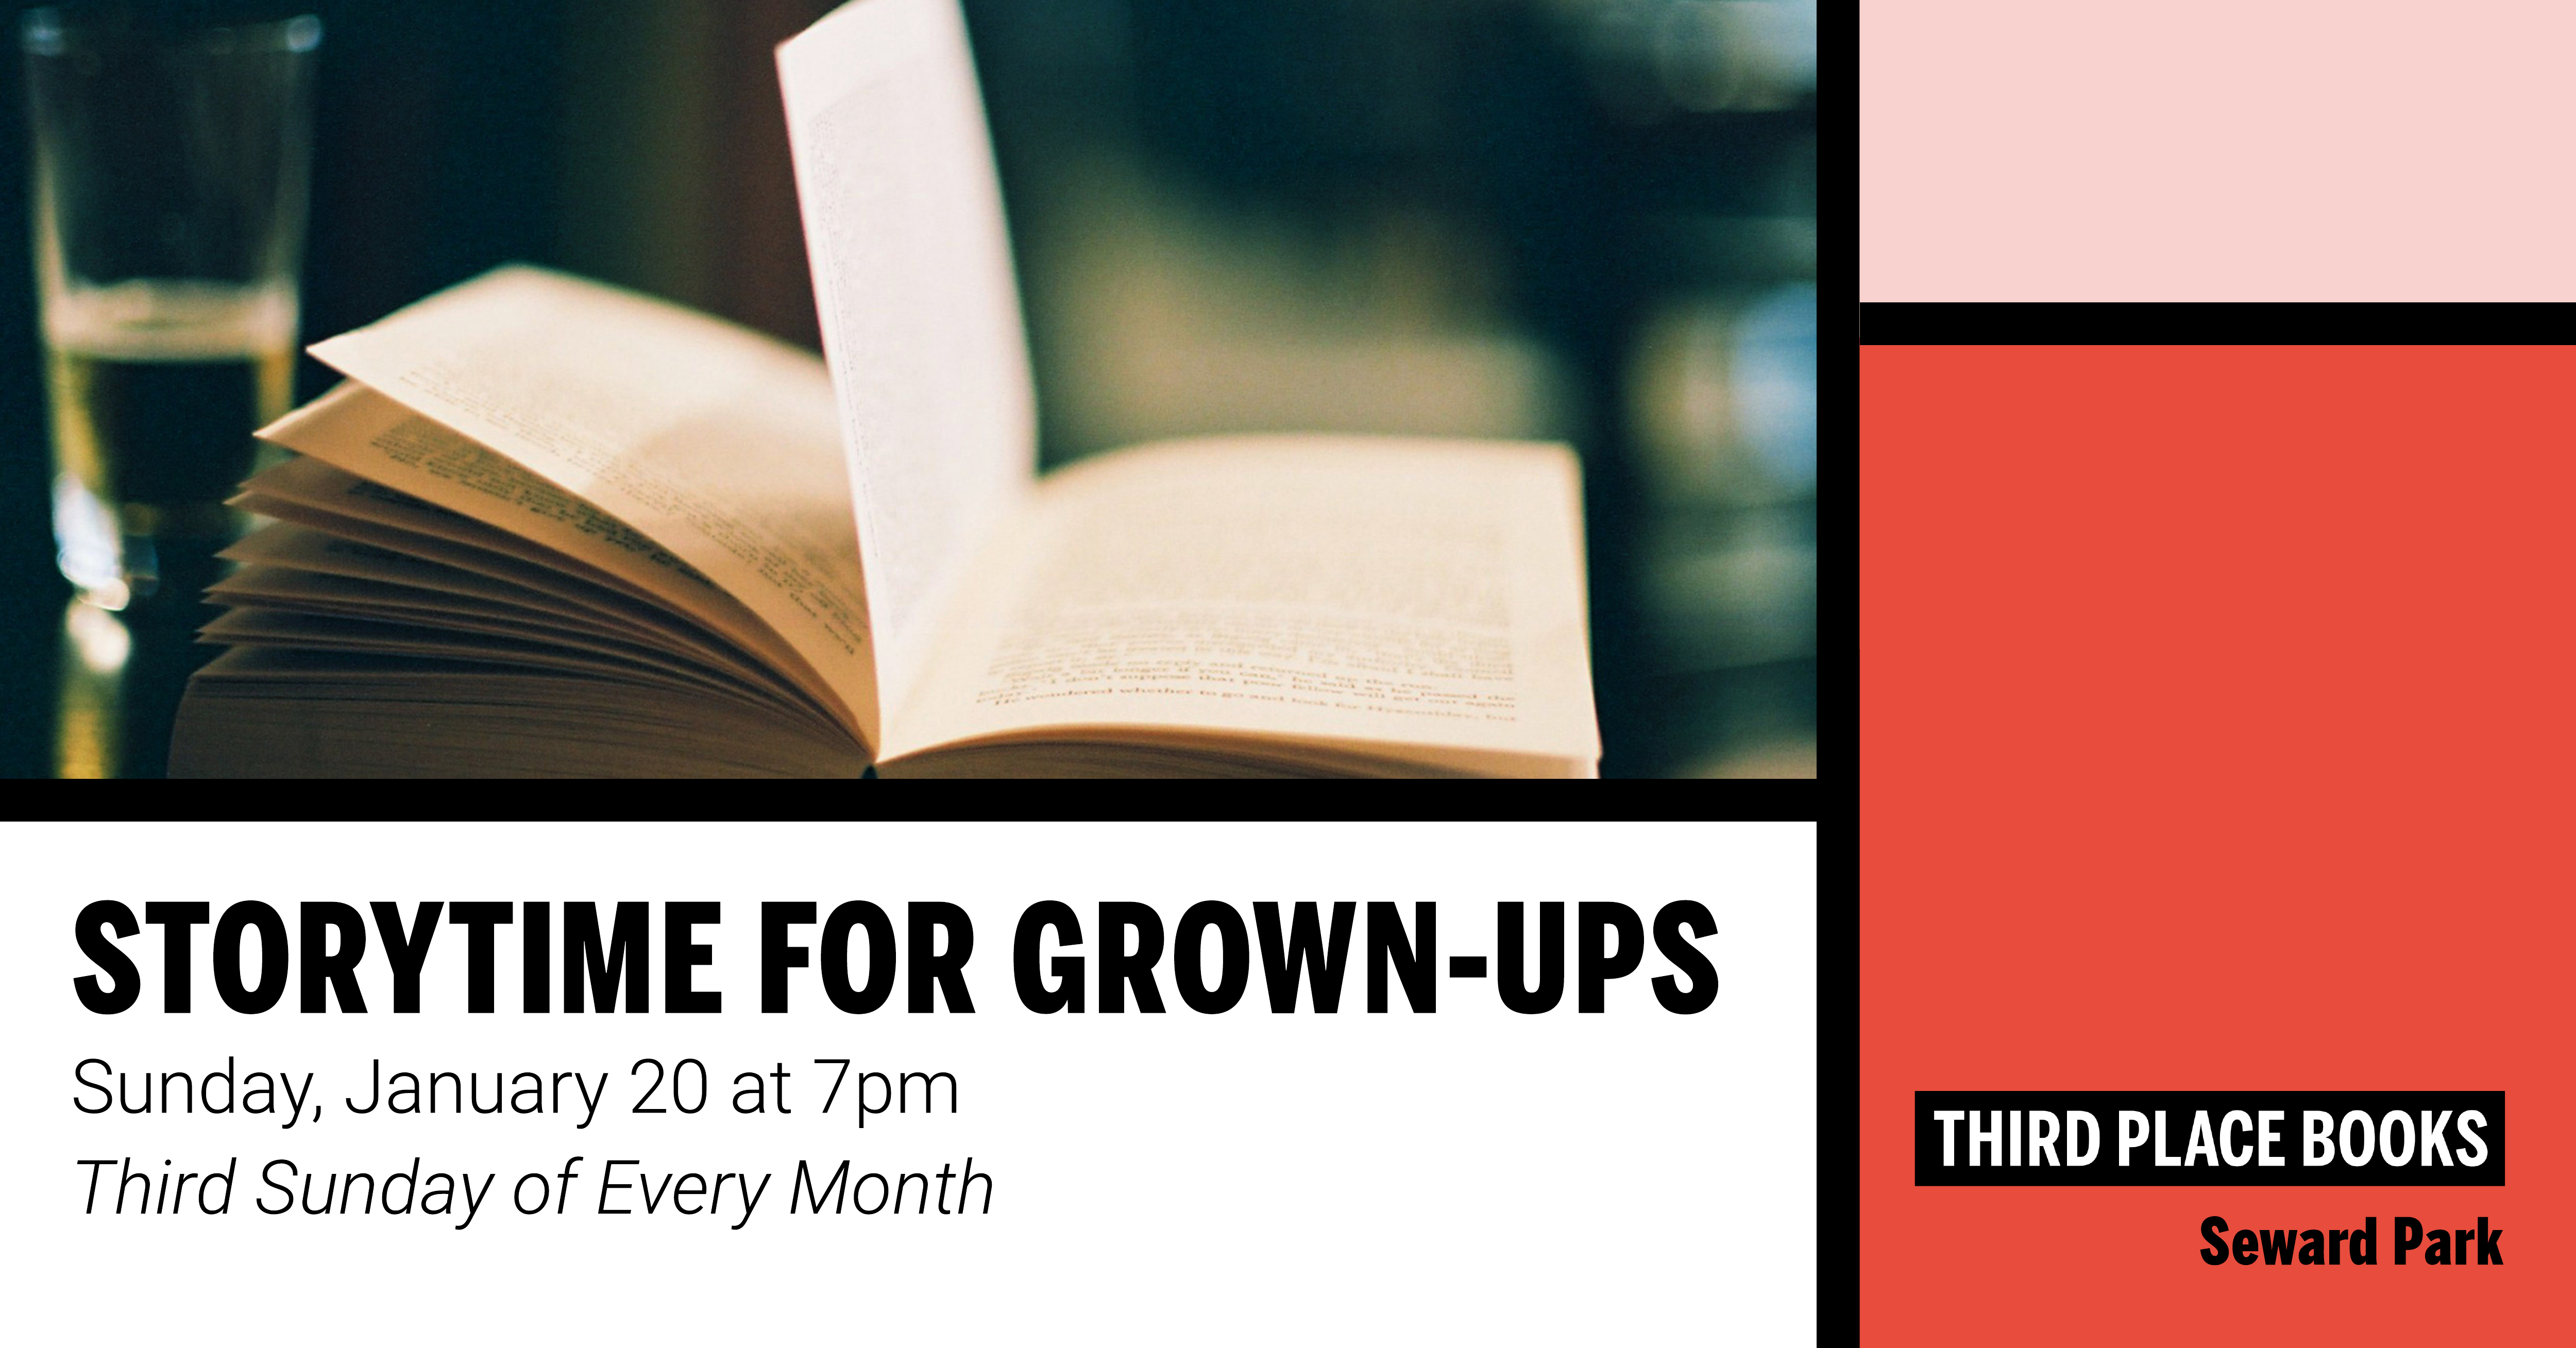 Story Time for Grown Ups! on Sunday, January 20th at 7pm